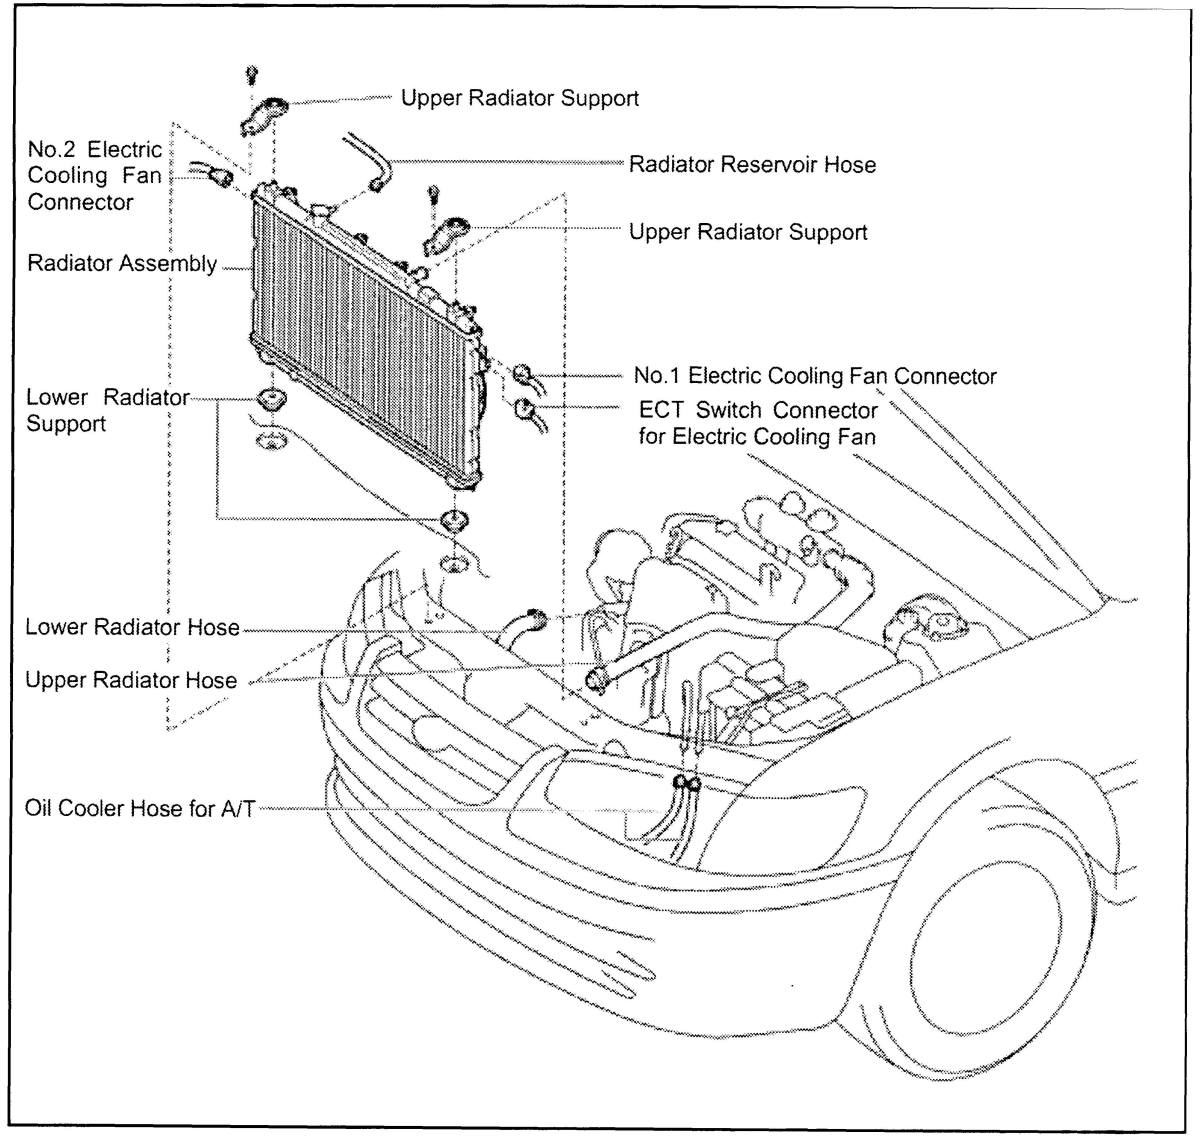 T6713841 Bank one sensor 2 oxygen sensor as well 3wwah 2003 Mazda 2 3 Liter Cyl Engine likewise Pontiac Grand Am V6 Engine Diagram in addition Mazda Mpv V6 Engine Diagram as well Mazda 1 5 Engine Diagram. on 2001 mazda tribute v6 engine parts diagram